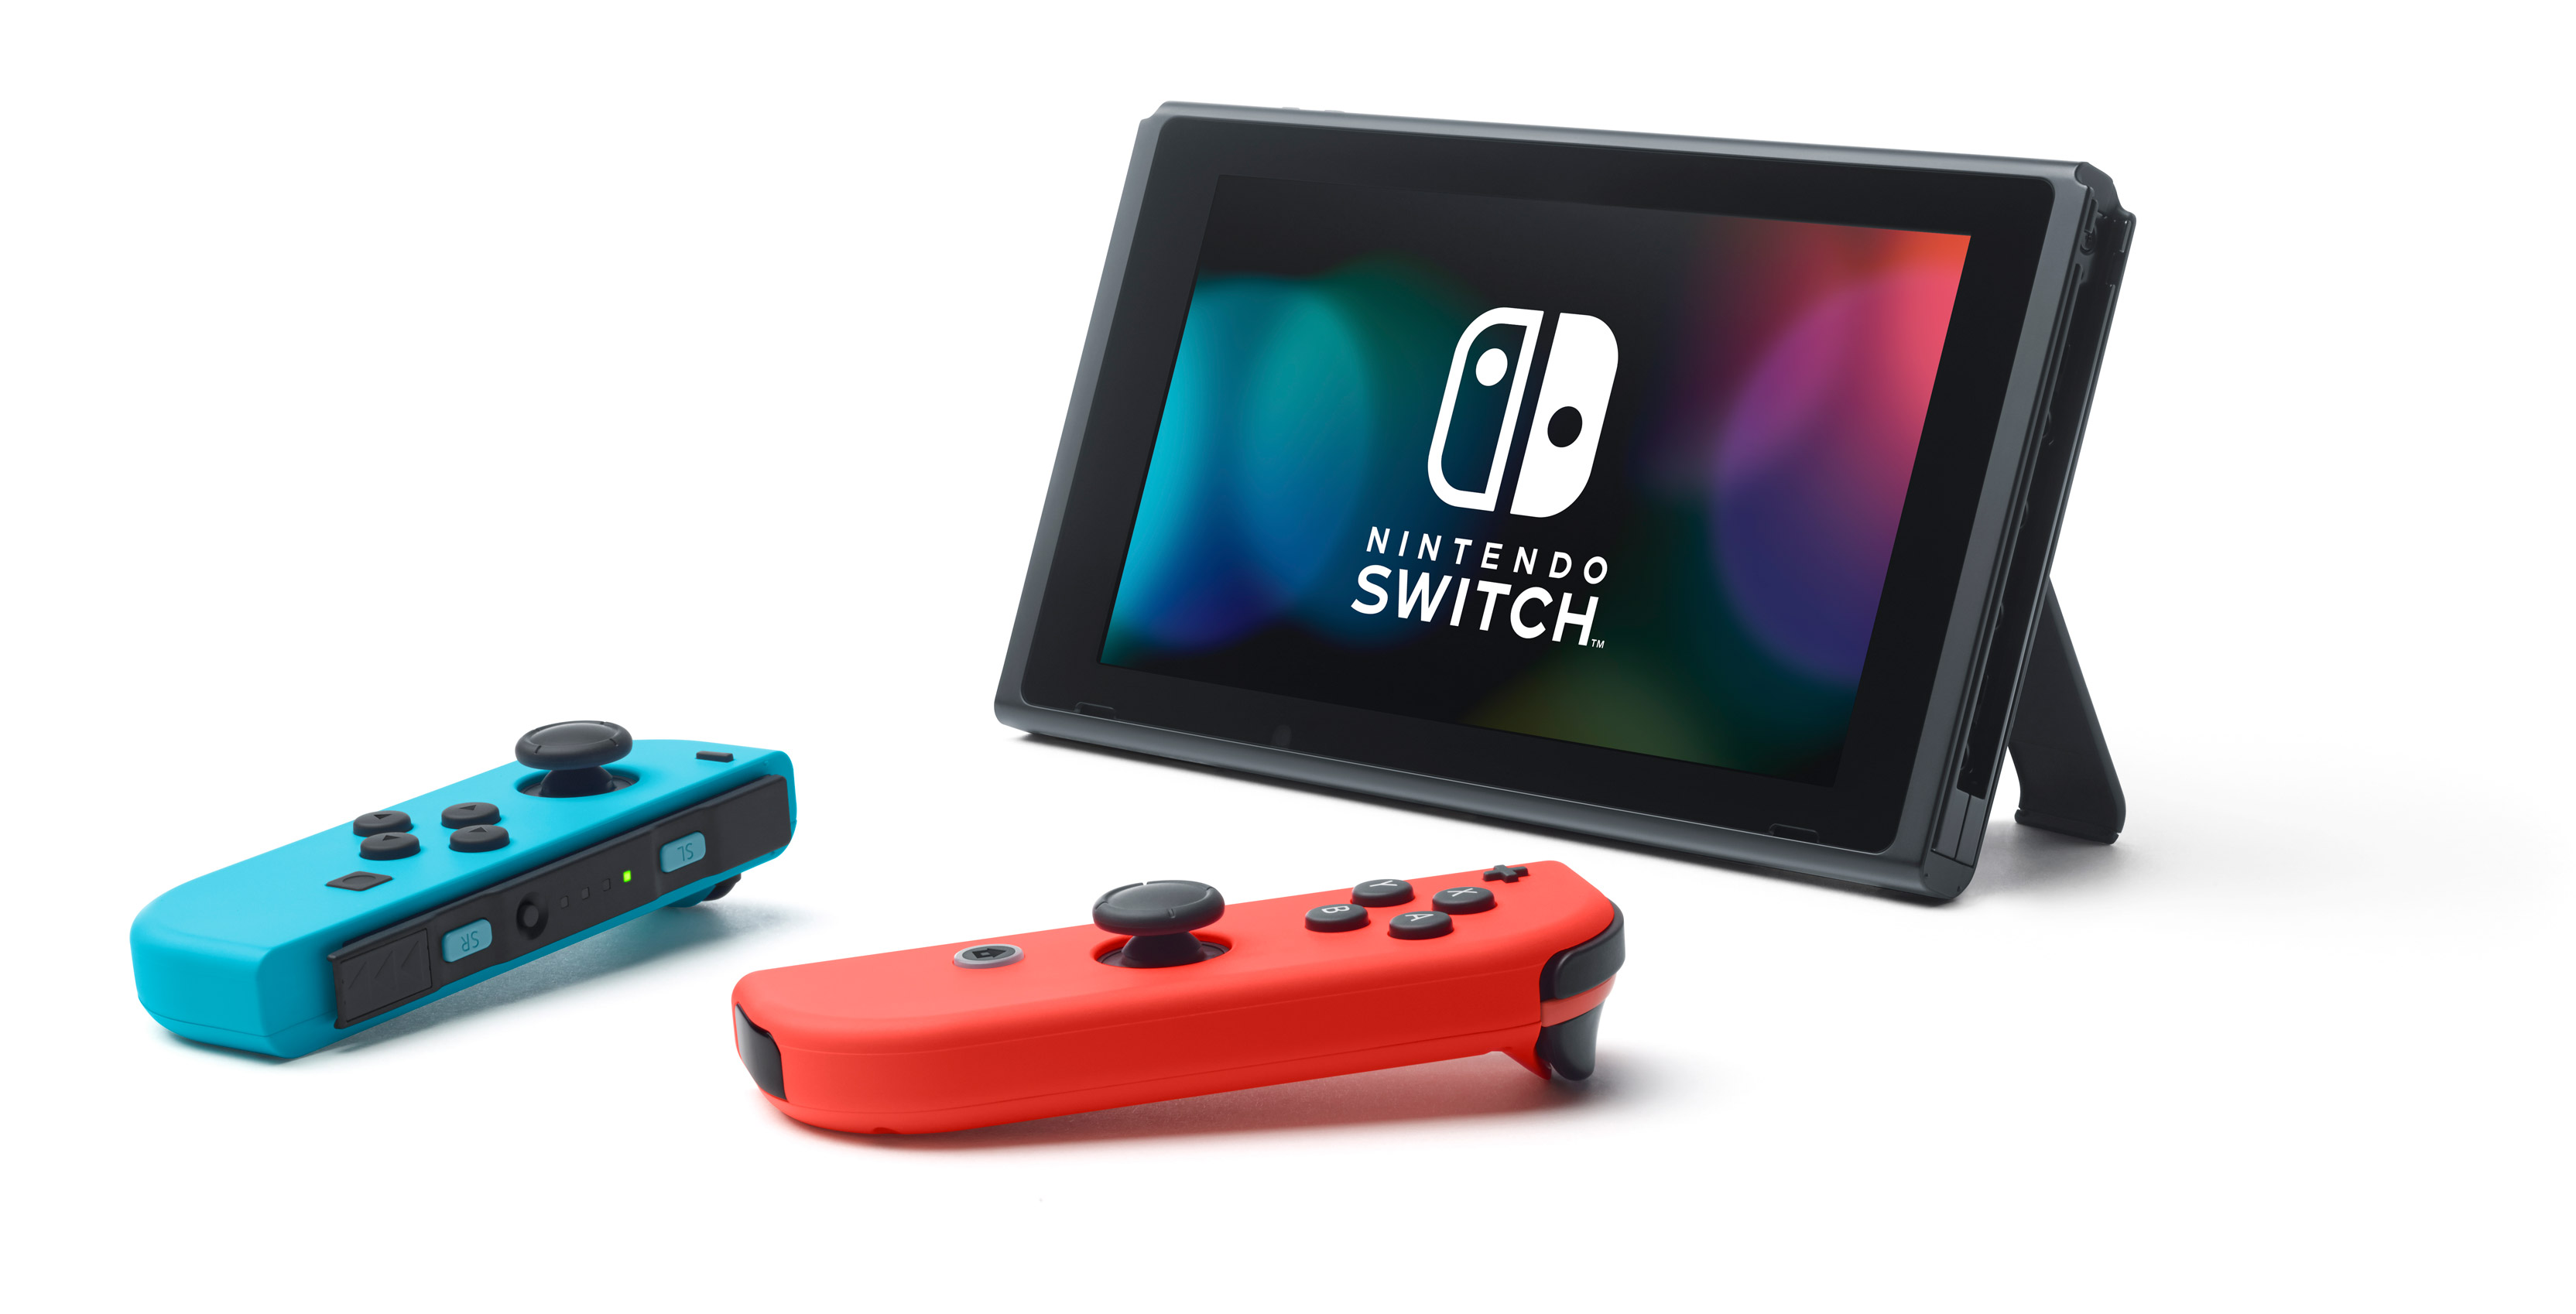 Display 32gb Nintendo Reveals Switch Specs 720p Display And 32gb Of Storage